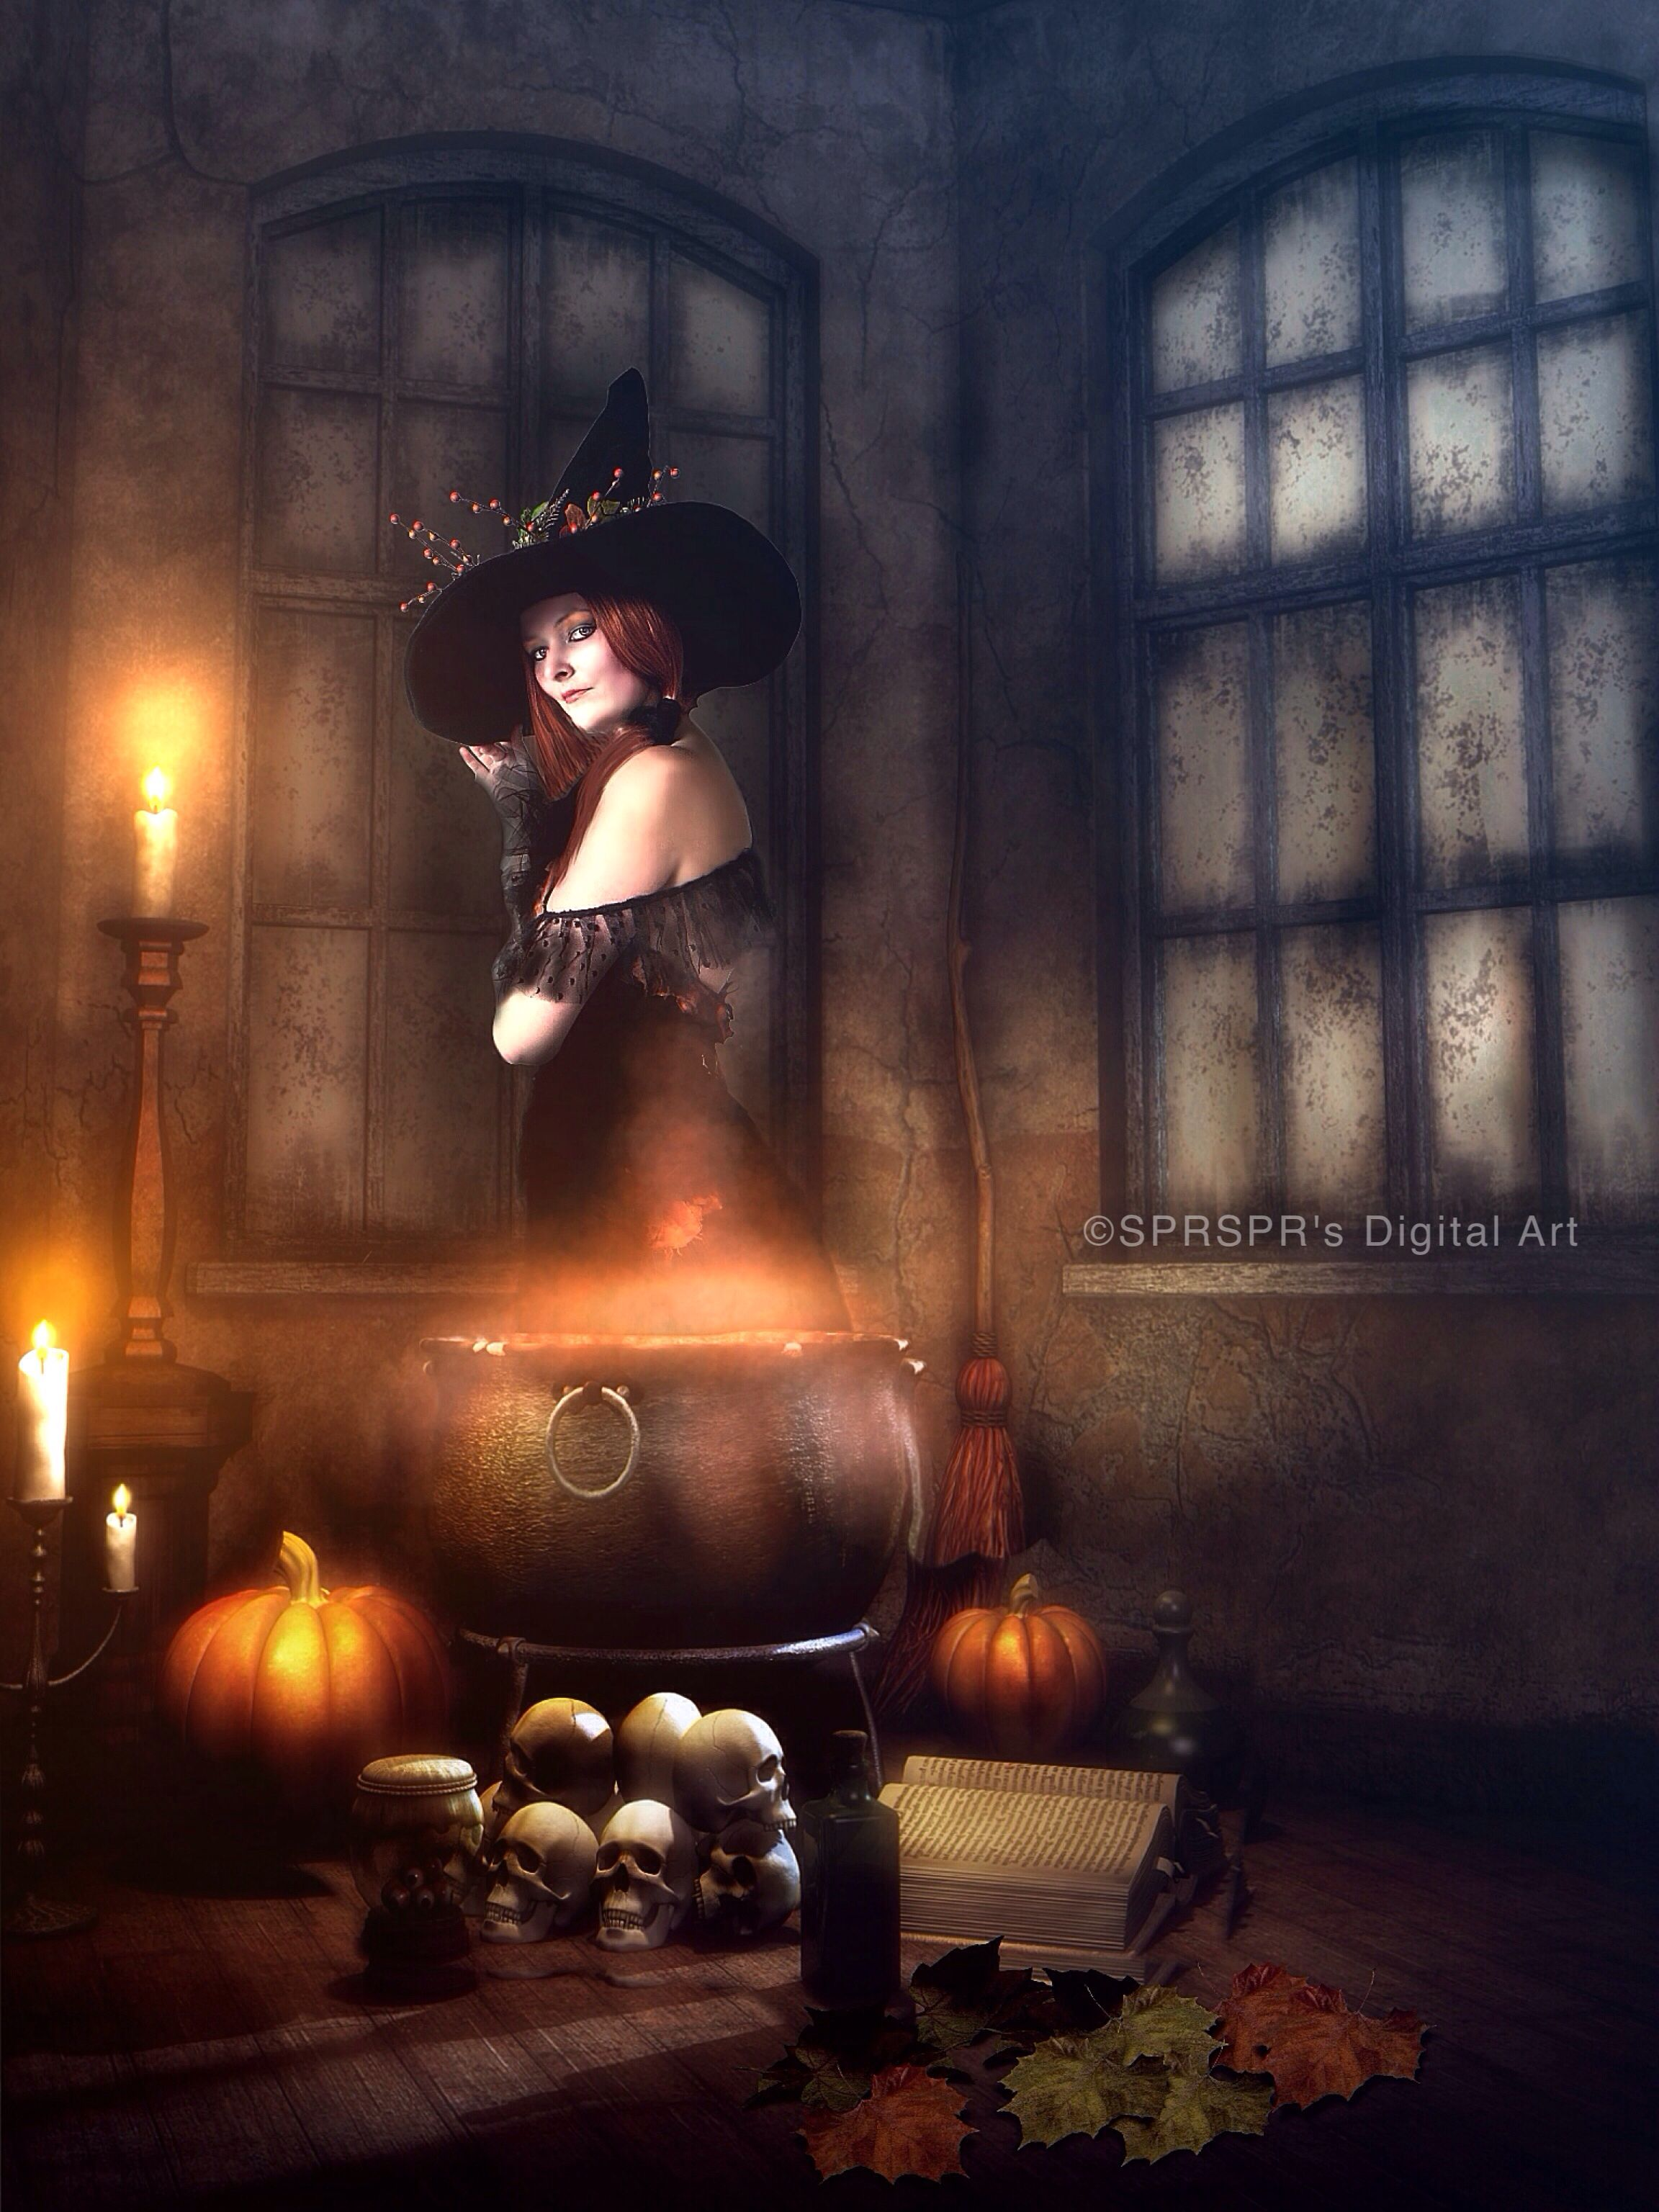 Autumn Witch  Credits Background http://moonchild-ljilja.deviantart.com/art/Halloween-Eve-Free-background-406379487 Model http://mizzd-stock.deviantart.com/art/Autumn-Witch-Portrait-2-66148810 Leaves http://moonglowlilly.deviantart.com/art/Png-Leaves-341165323. #sprsprsdigitalart #fantasy #halloween #photomanipulation #ipadart #witch